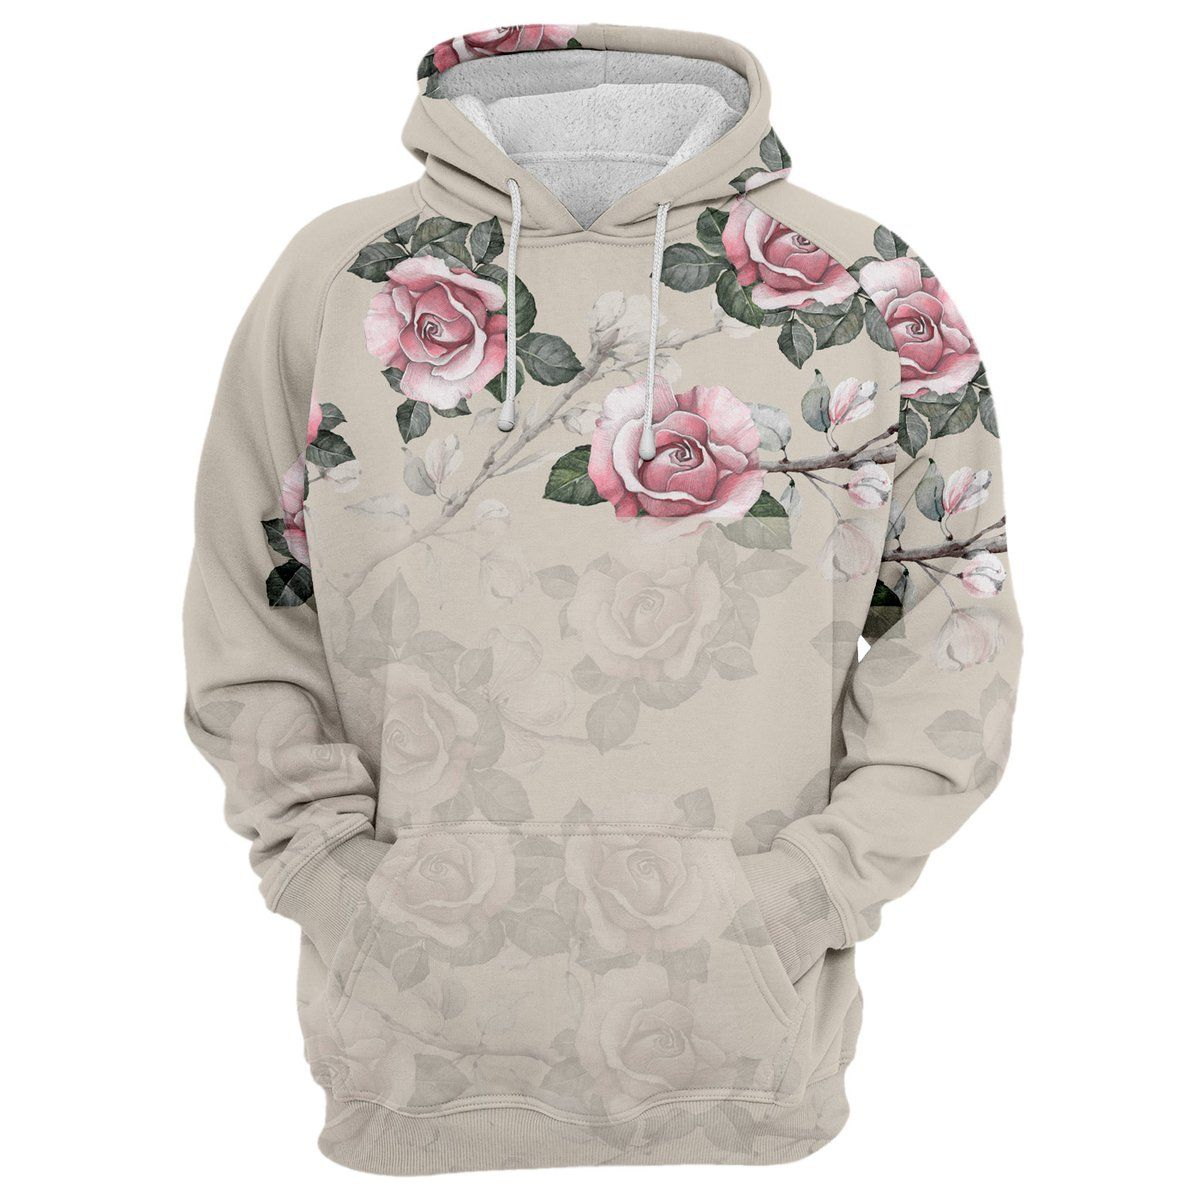 Wear Our Unique Retro Roses Hoodie Featuring A Custom Made Design Crafted From 100 Polyester The Print Of Vintage Pink Unisex Hoodies Hoodies Trendy Hoodies [ 1200 x 1200 Pixel ]